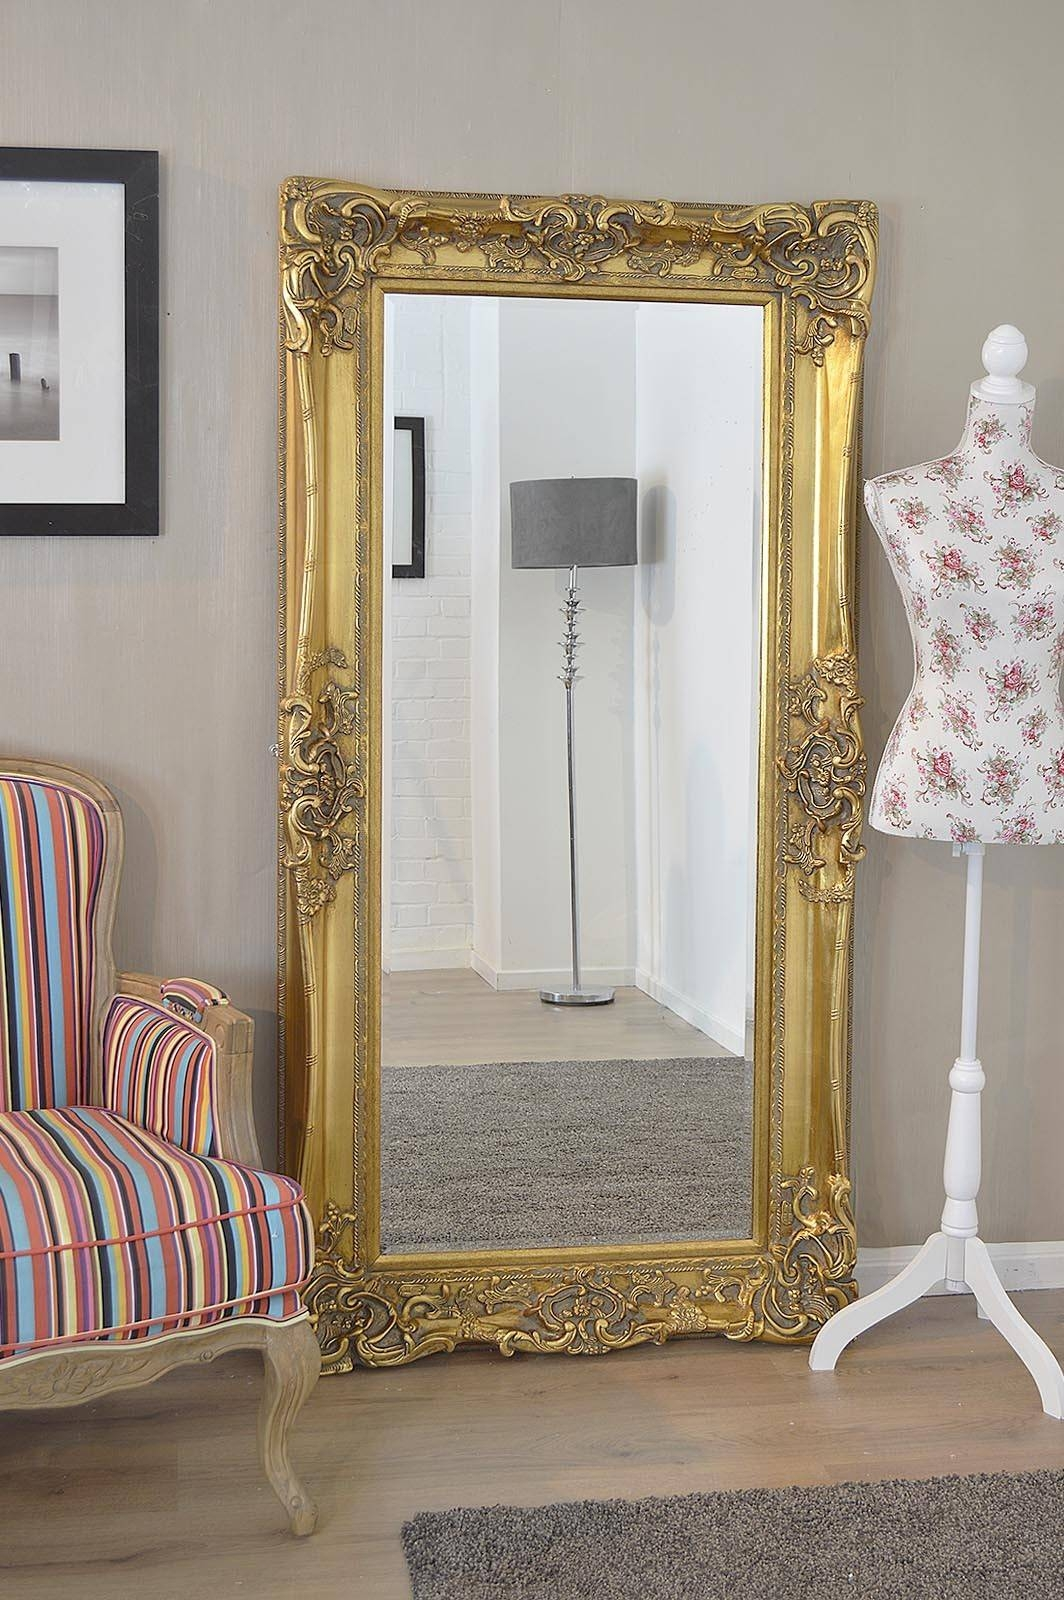 Old Fashioned Wall Mirrors Antique Mirror Wall Covering Vintage with regard to Old Fashioned Wall Mirrors (Image 12 of 15)